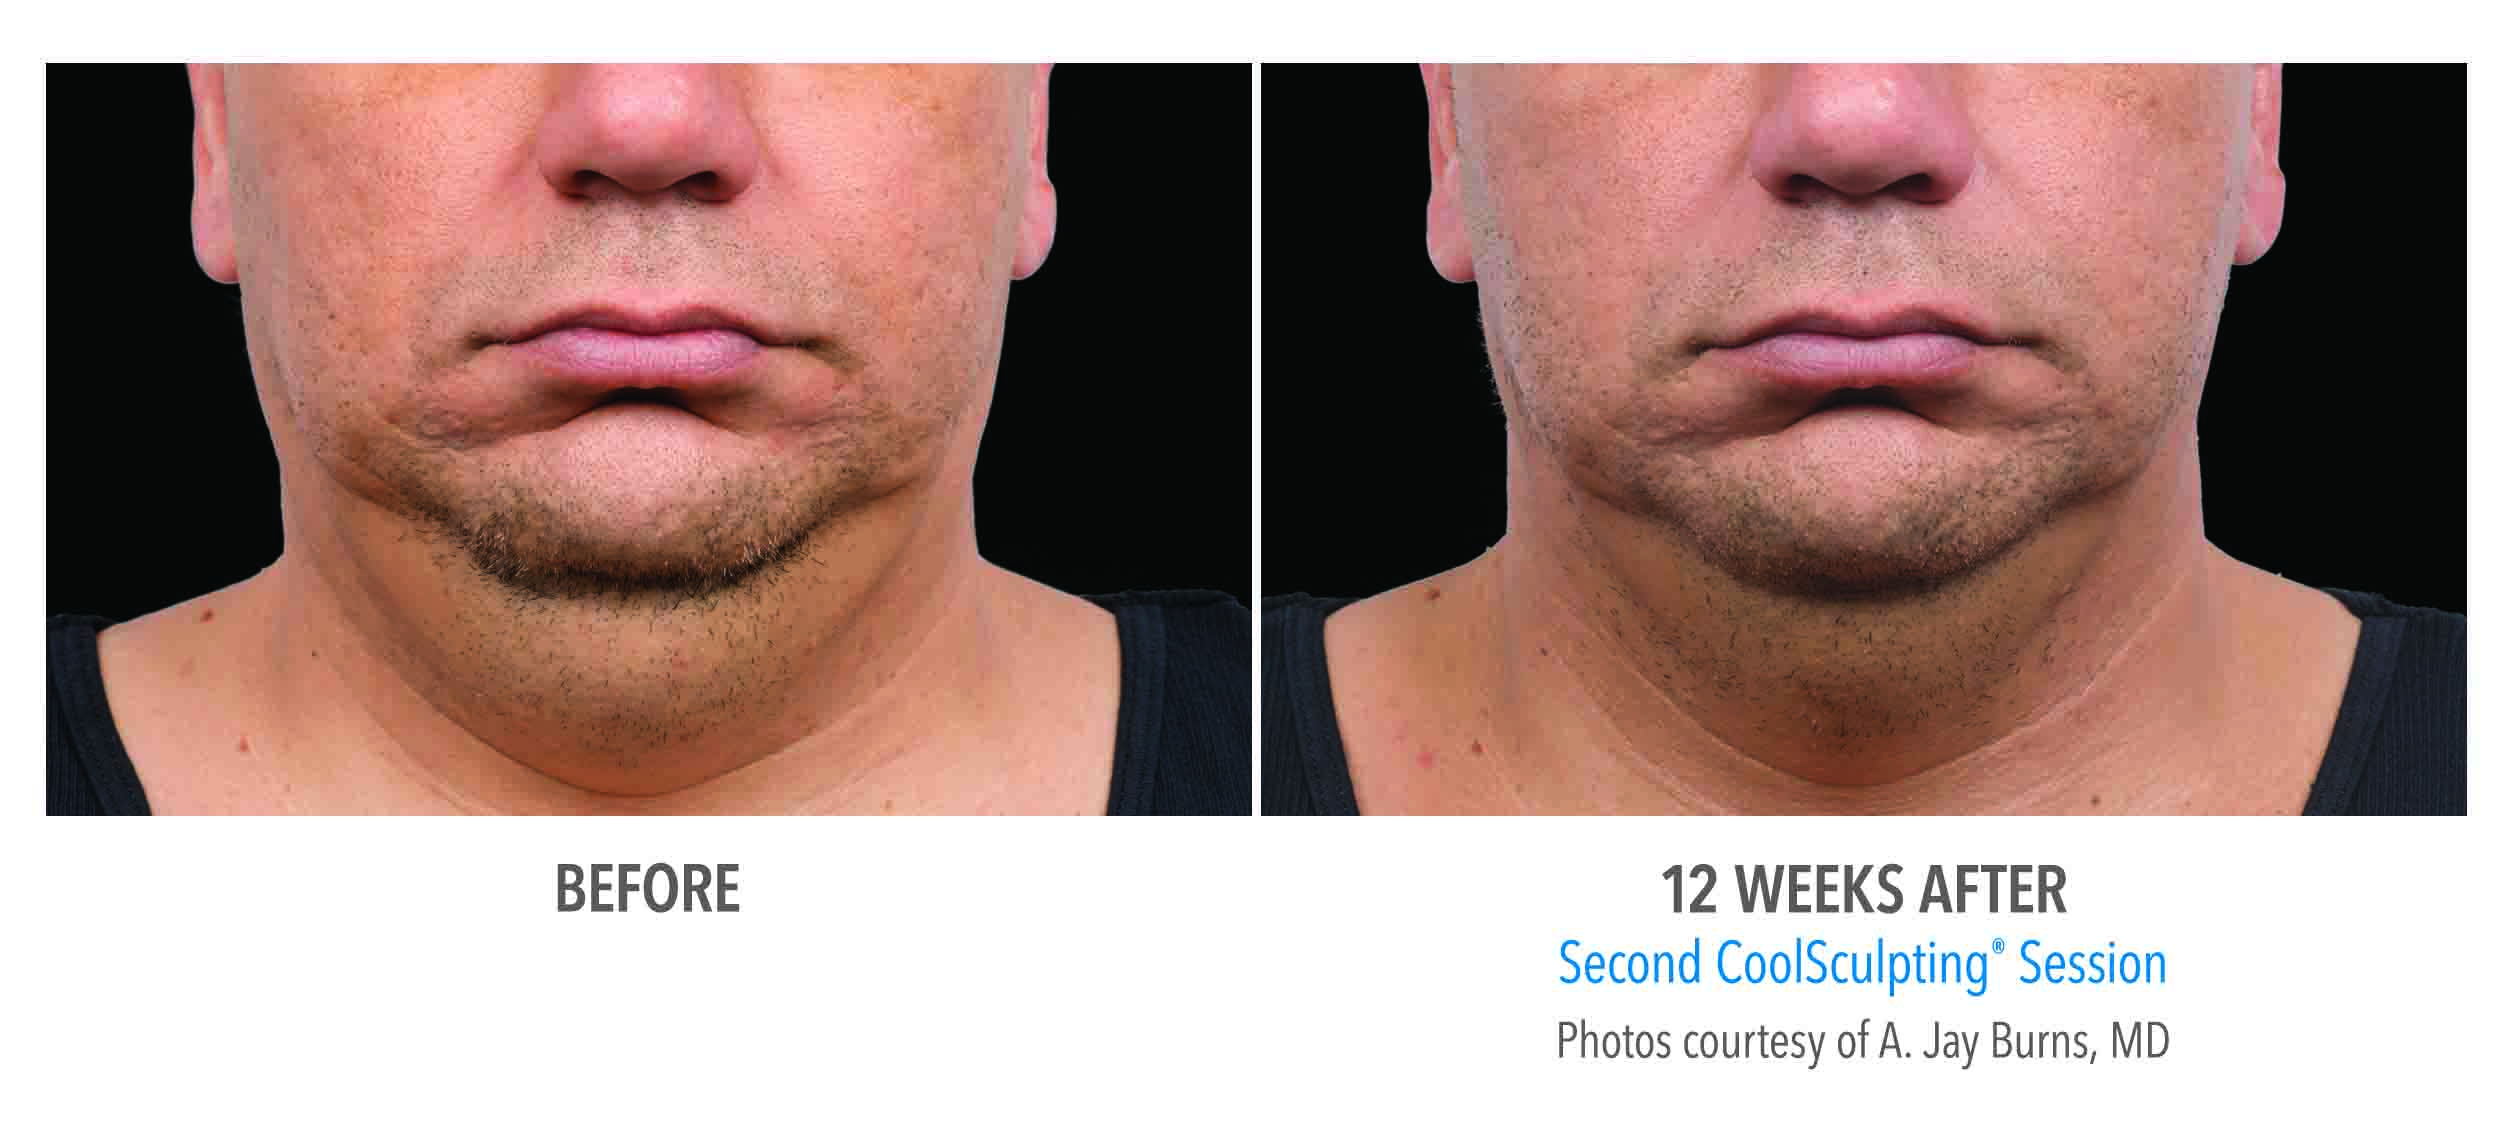 CoolSculpting Chin Before After Result of Men